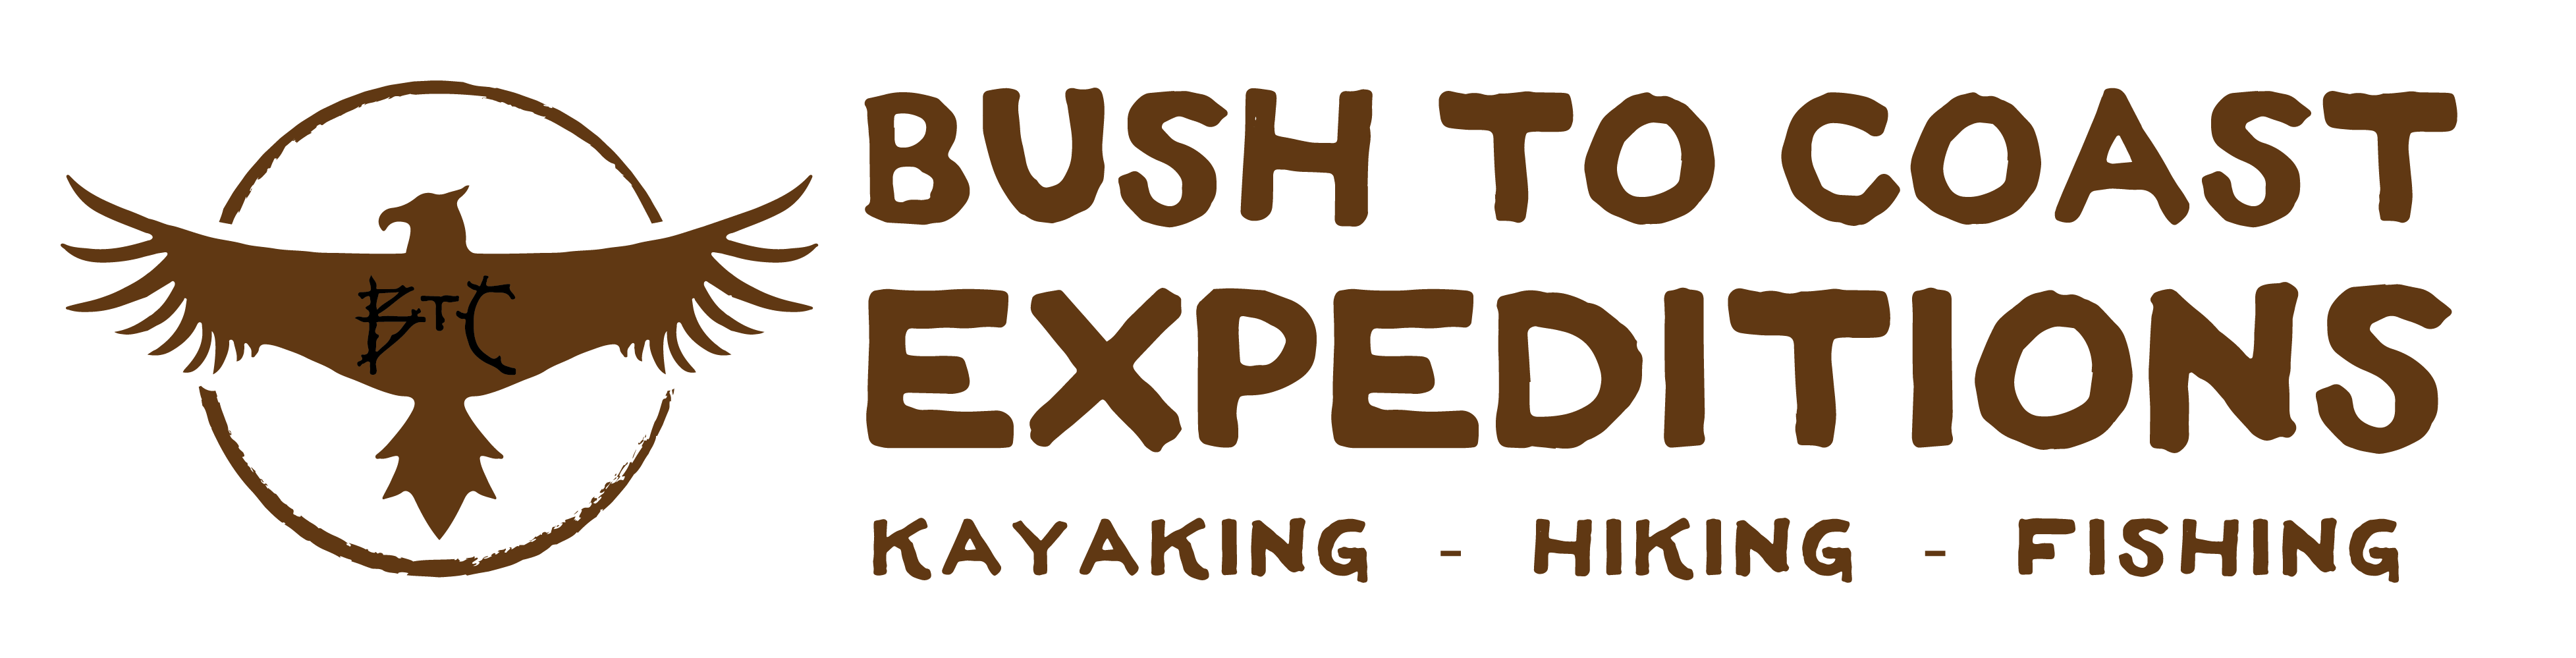 Bush to Coast Expeditions